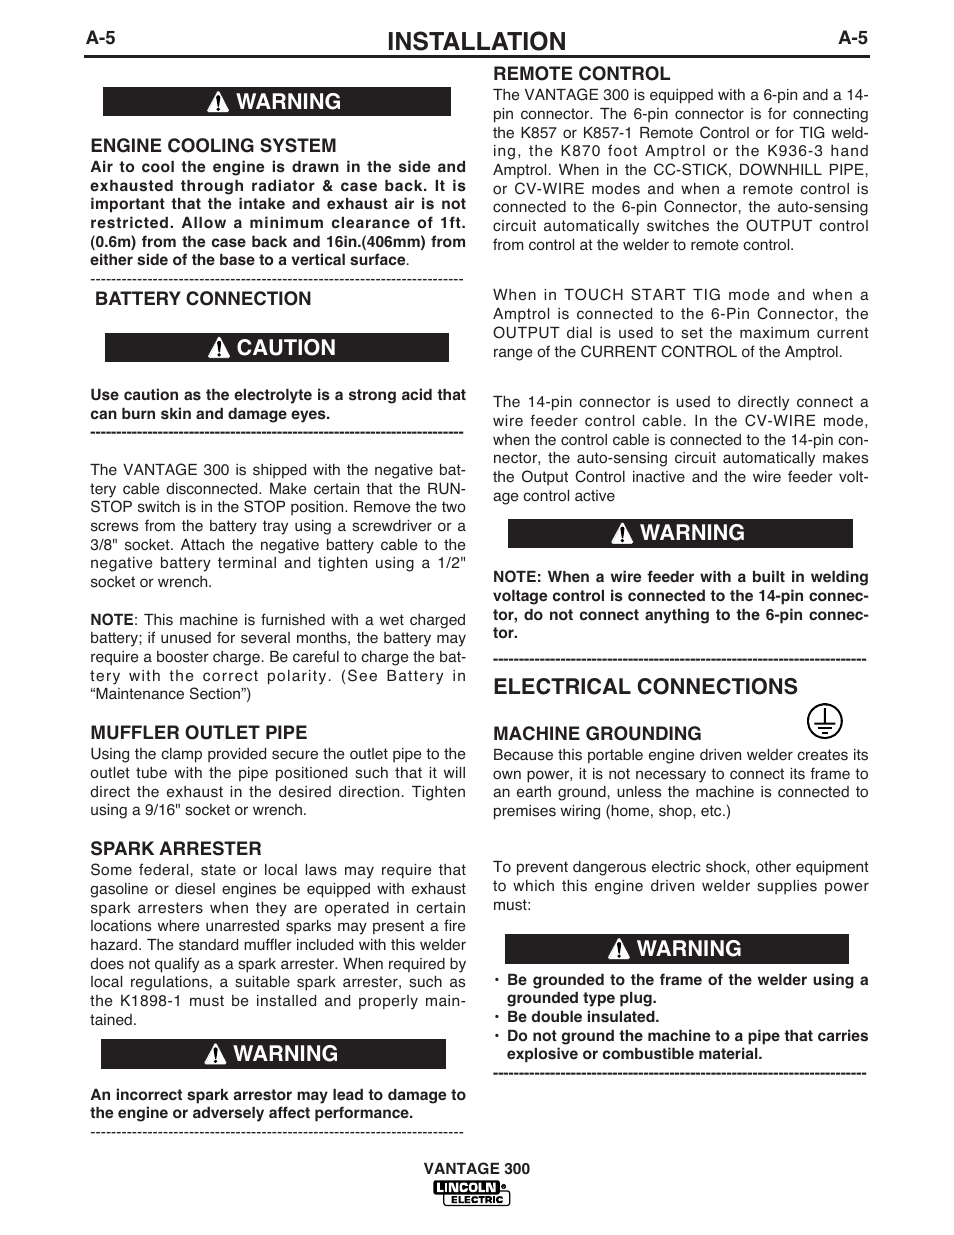 Installation Electrical Connections Warning Lincoln Electric How To Do Wiring In Home Im874 Vantage 300 User Manual Page 13 57